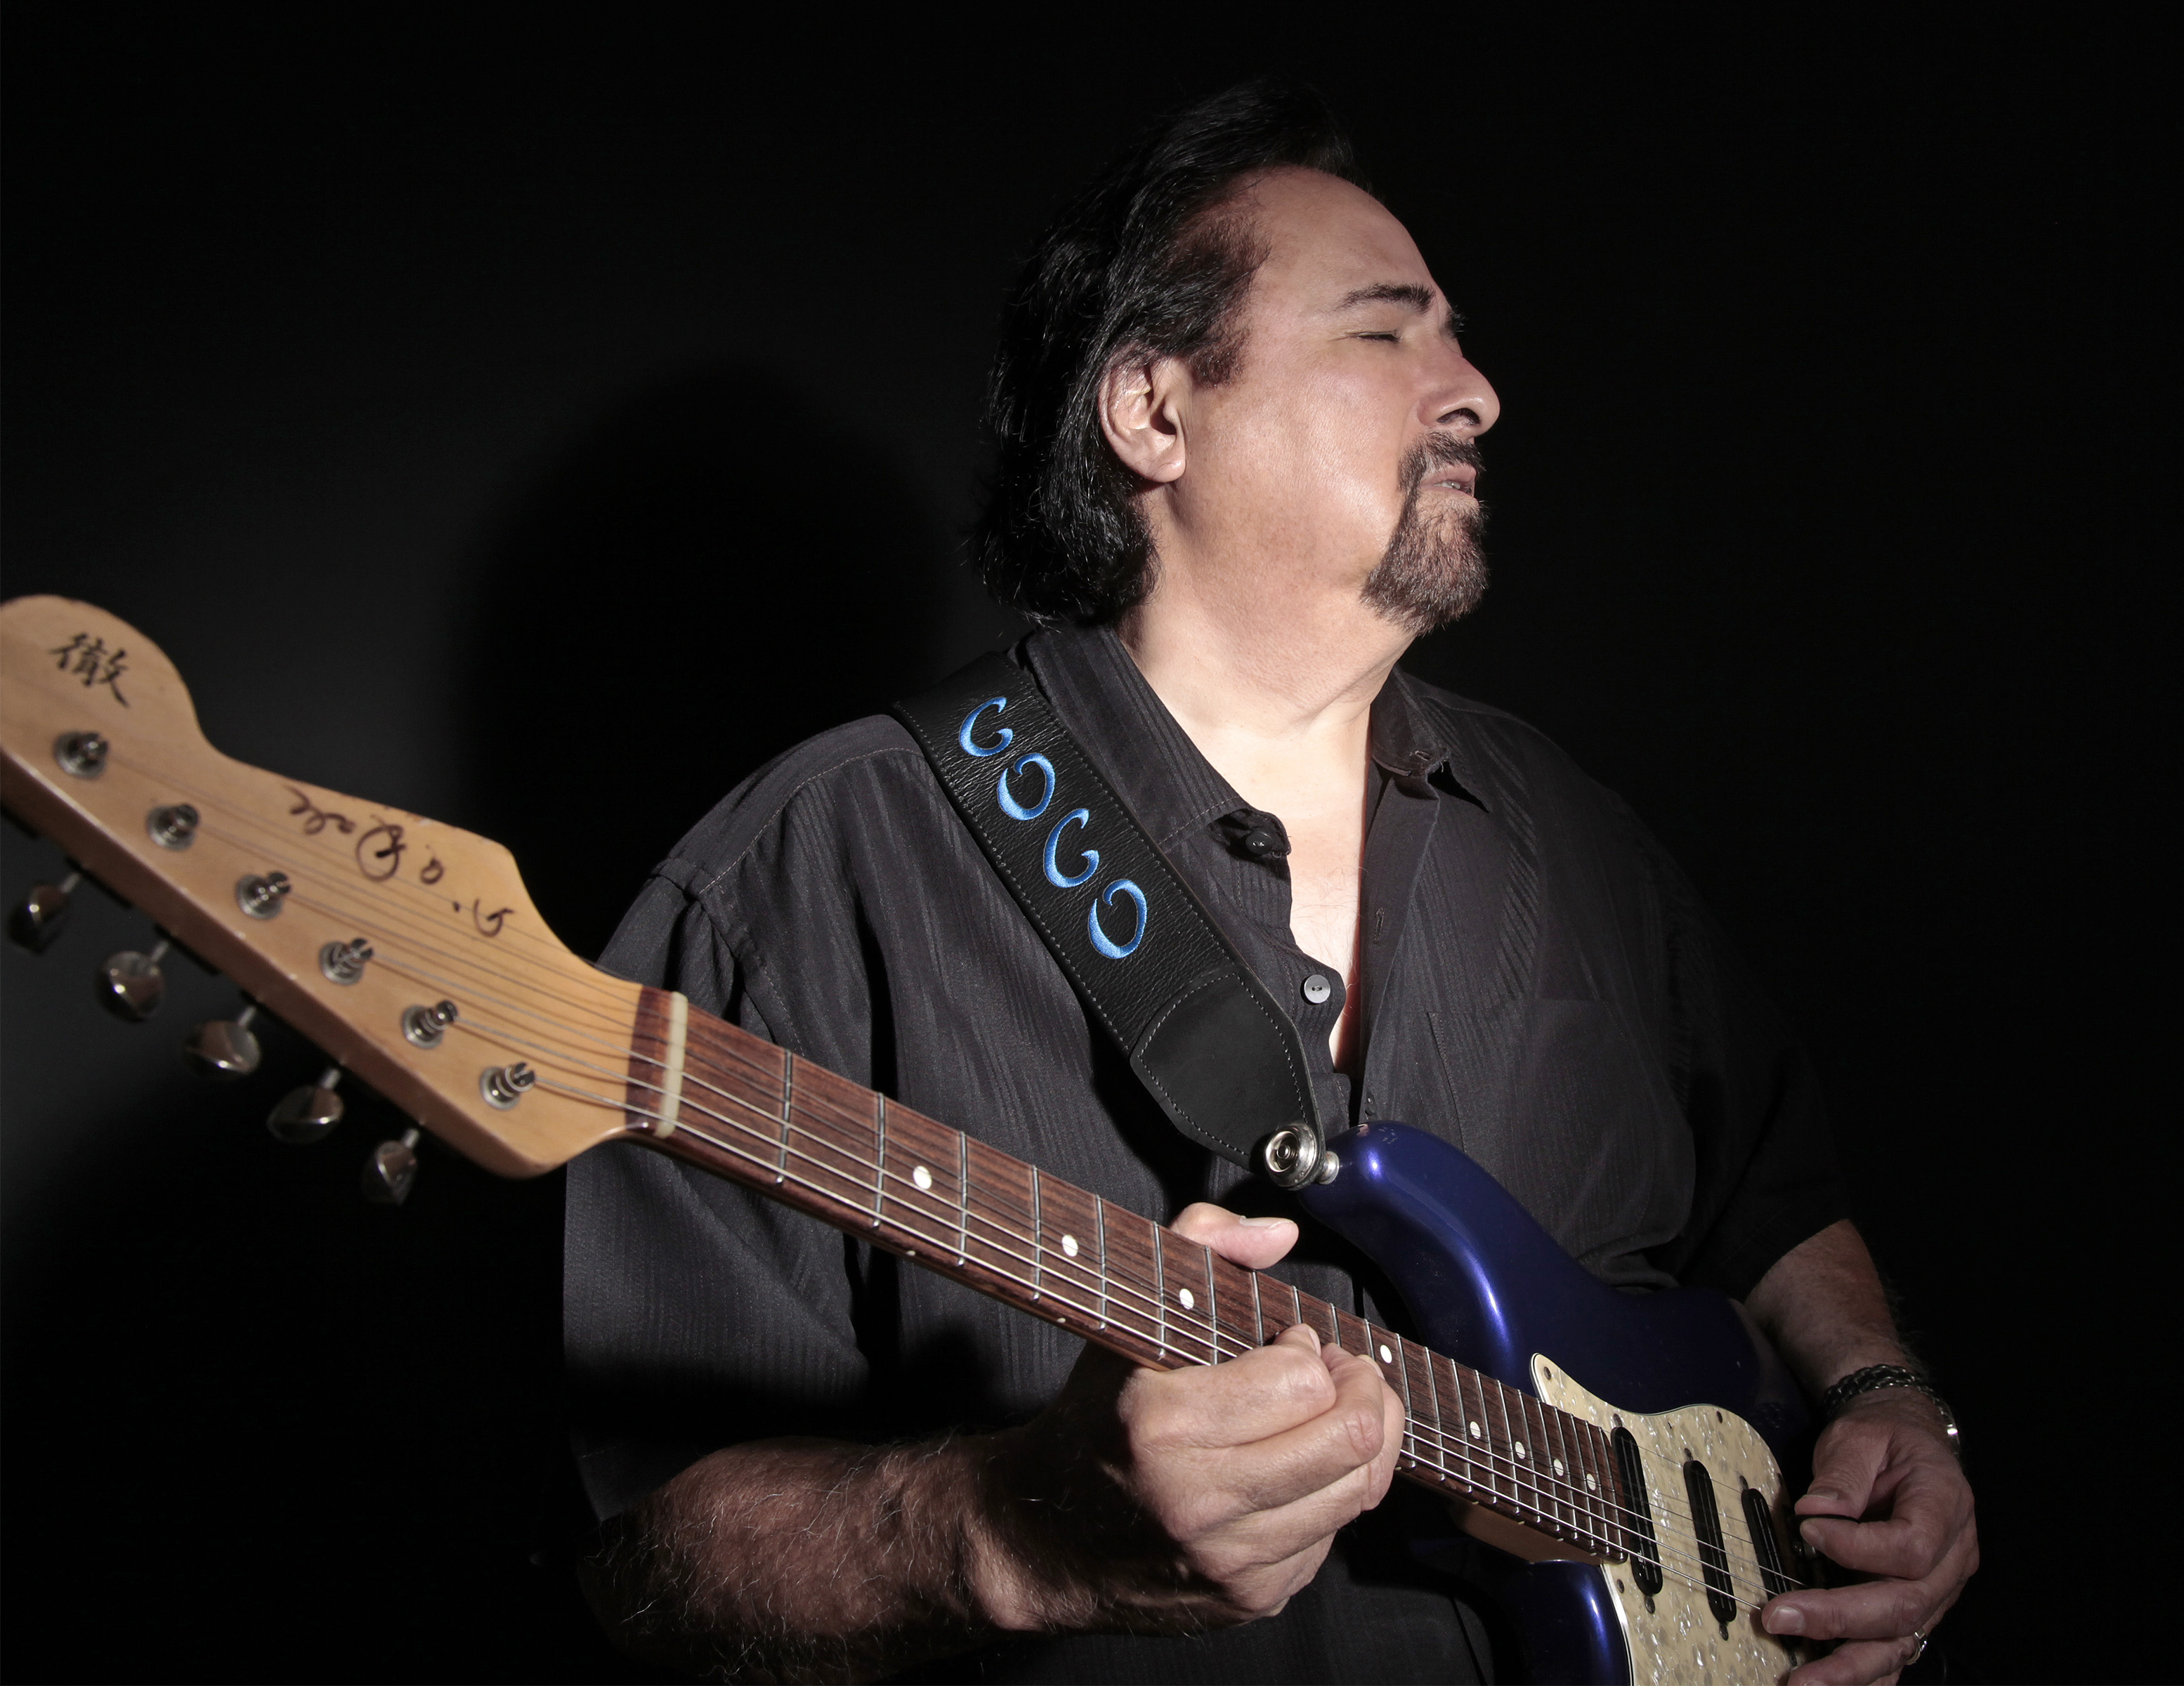 Blues musician Coco Montoya will sizzle at the Ute Theater